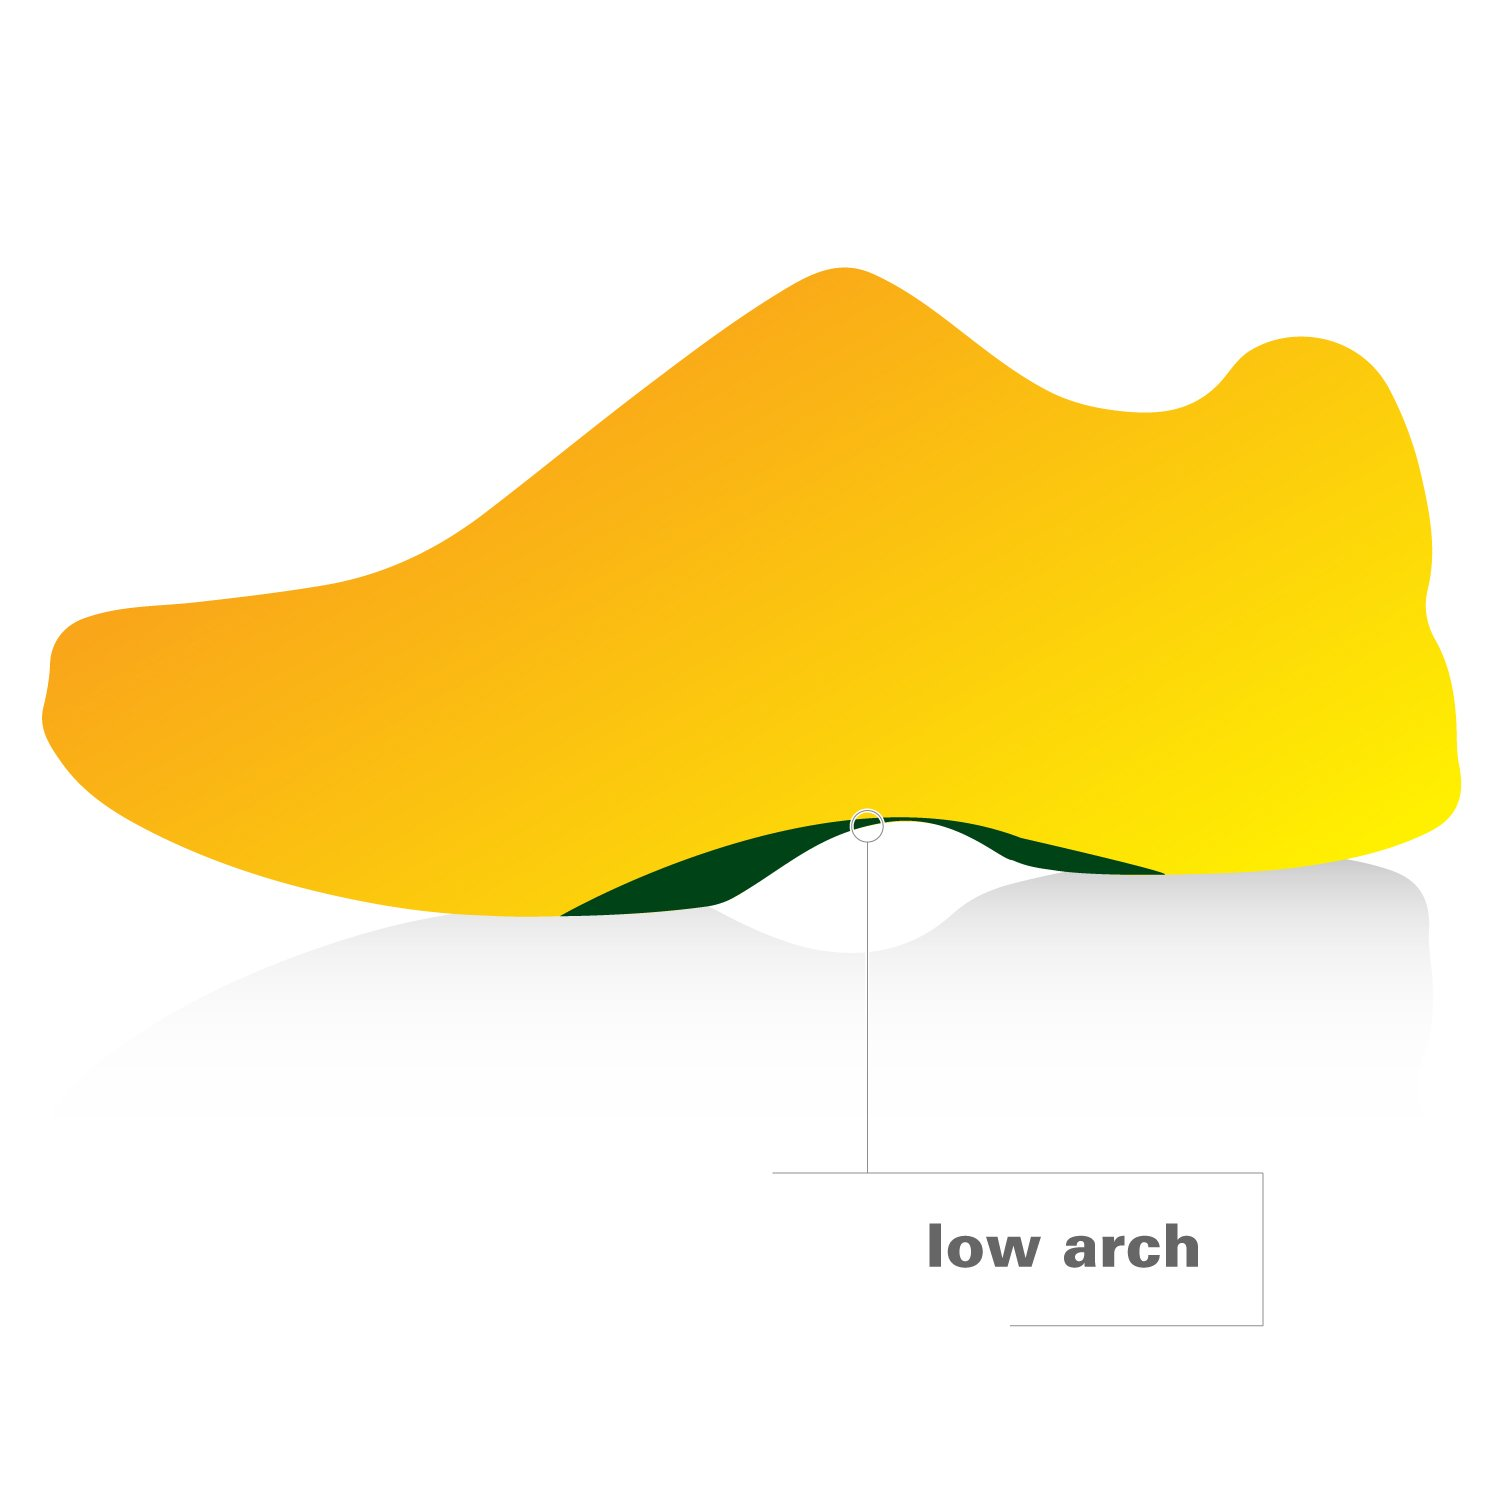 Spenco Polysorb Heavy Duty Maximum All Day Comfort and Support Shoe Insole, Women's 11-12.5/Men's 10-11.5 by Spenco (Image #5)